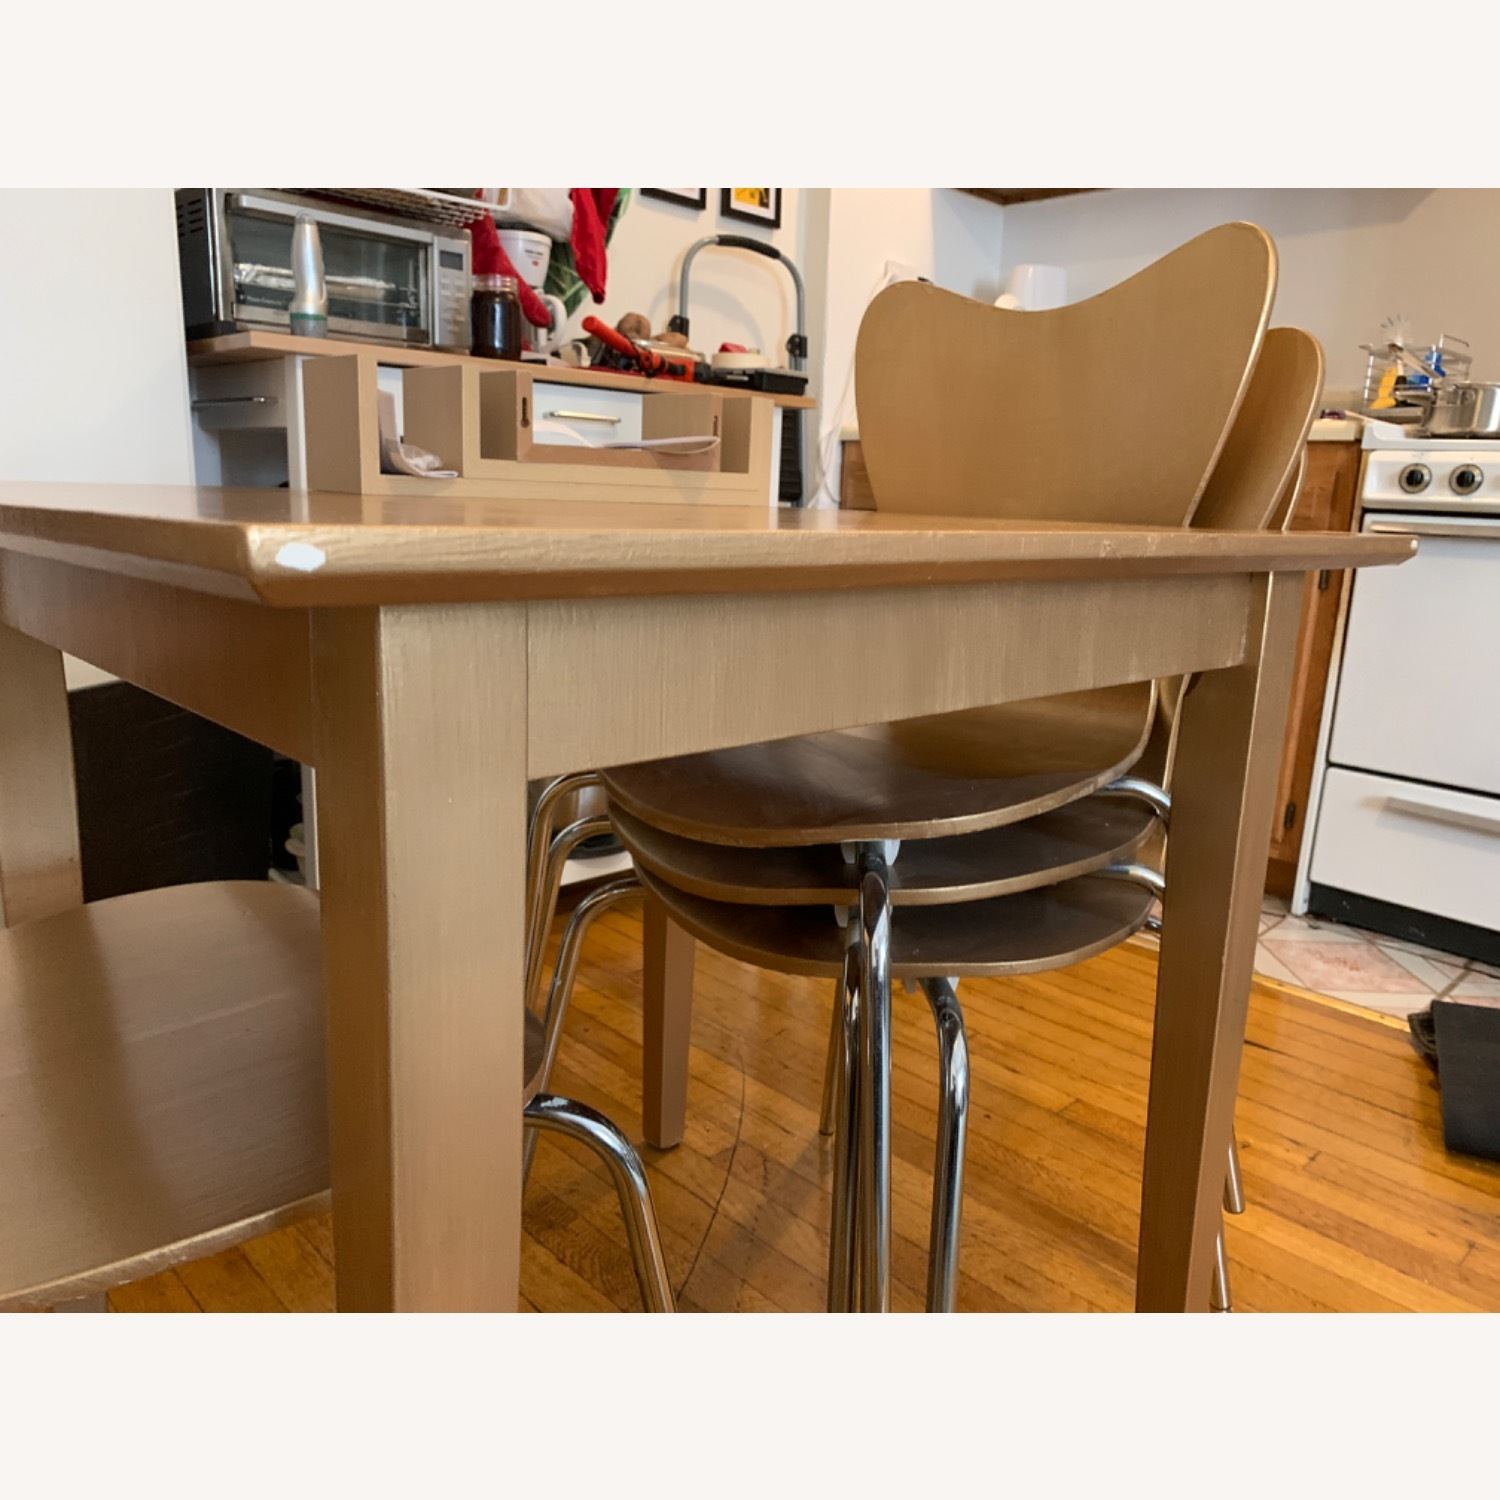 Gold West Elm (4) Chairs and Table - image-11